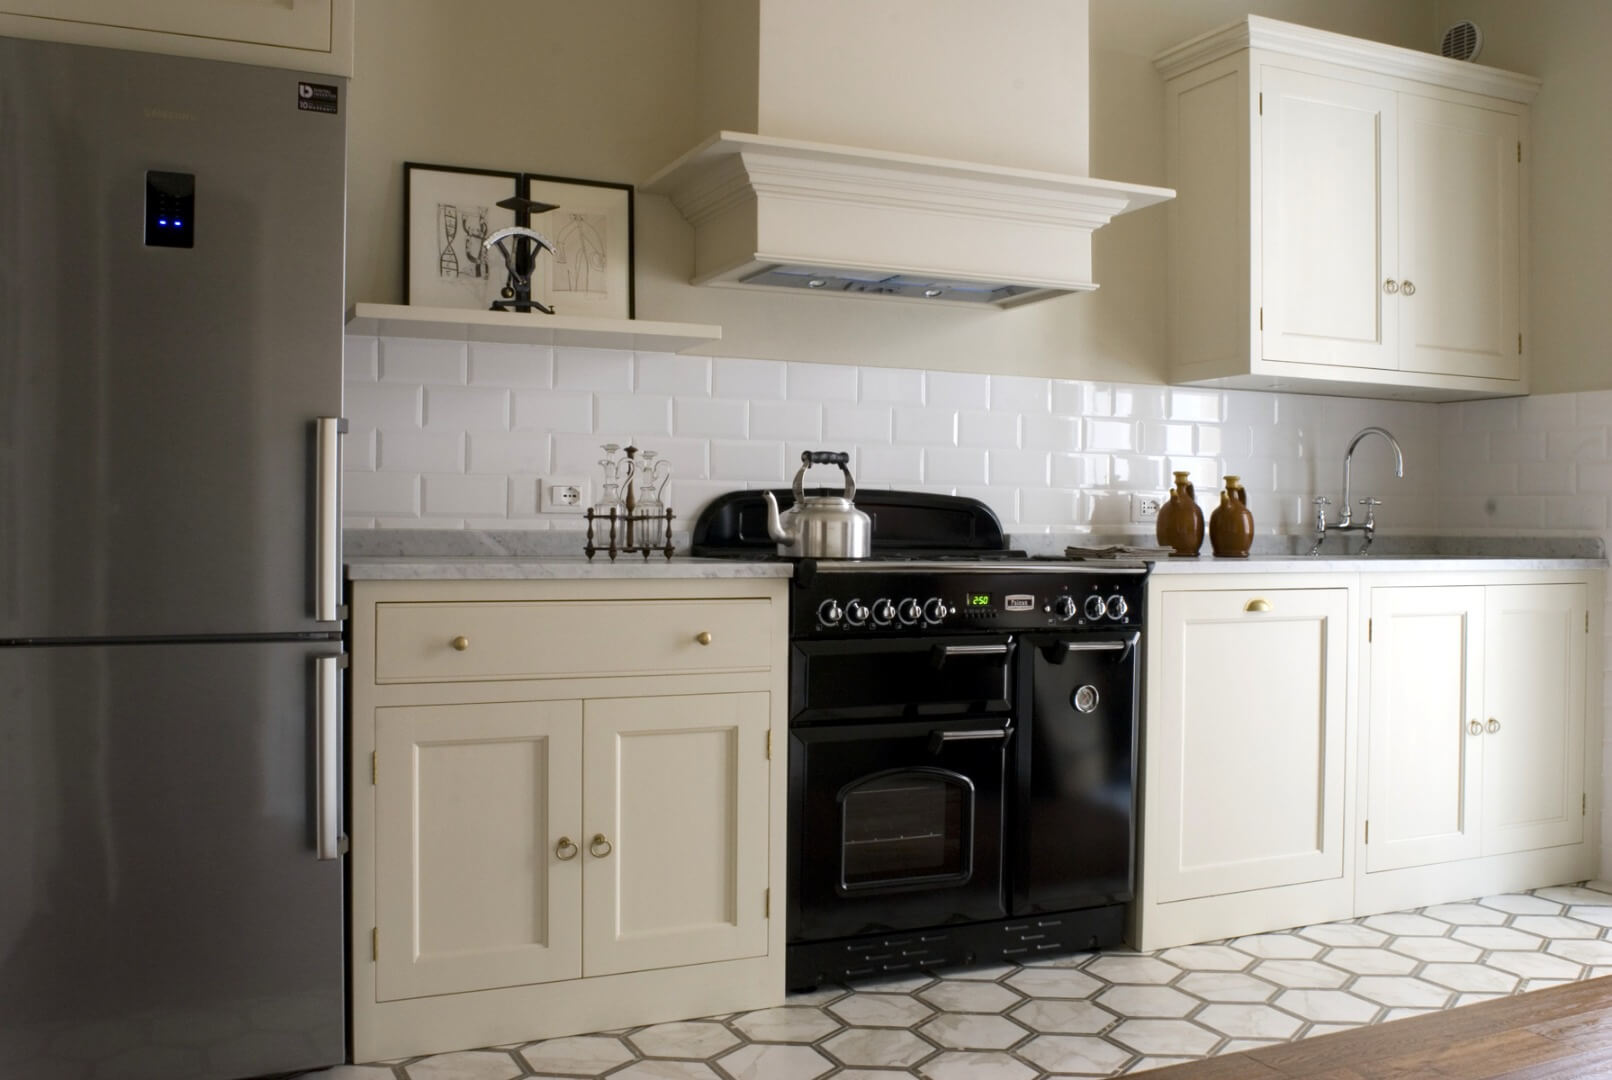 Stile Country Cucina. Cucina Country Chic Aurora Cucine With Stile ...